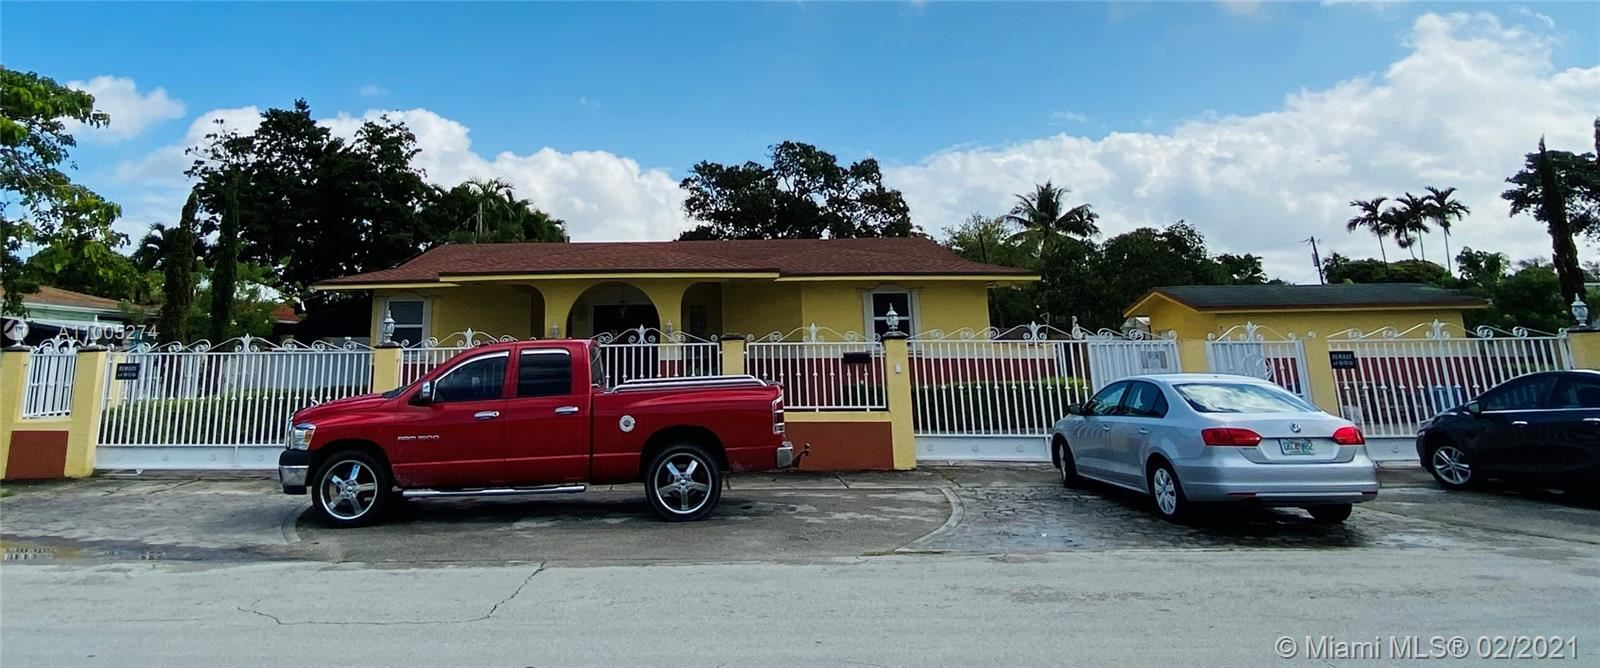 1631 NW 32nd Ave, Miami, FL 33125 - #: A11005274